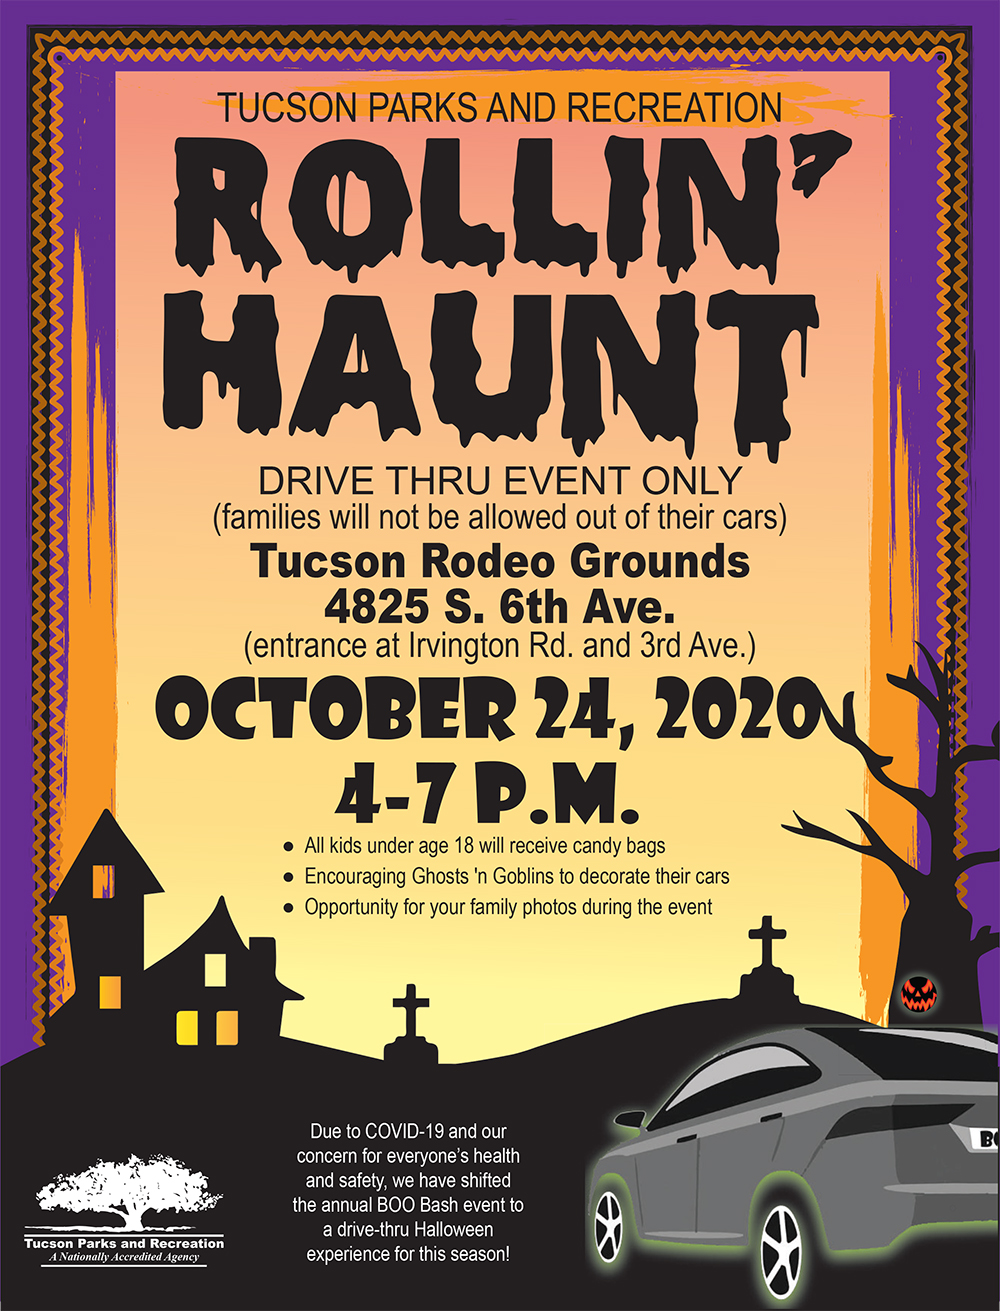 2020 Tucson Halloween Safety Bash Rollin' Haunt  Tucson Parks and Rec | Bear Essential News